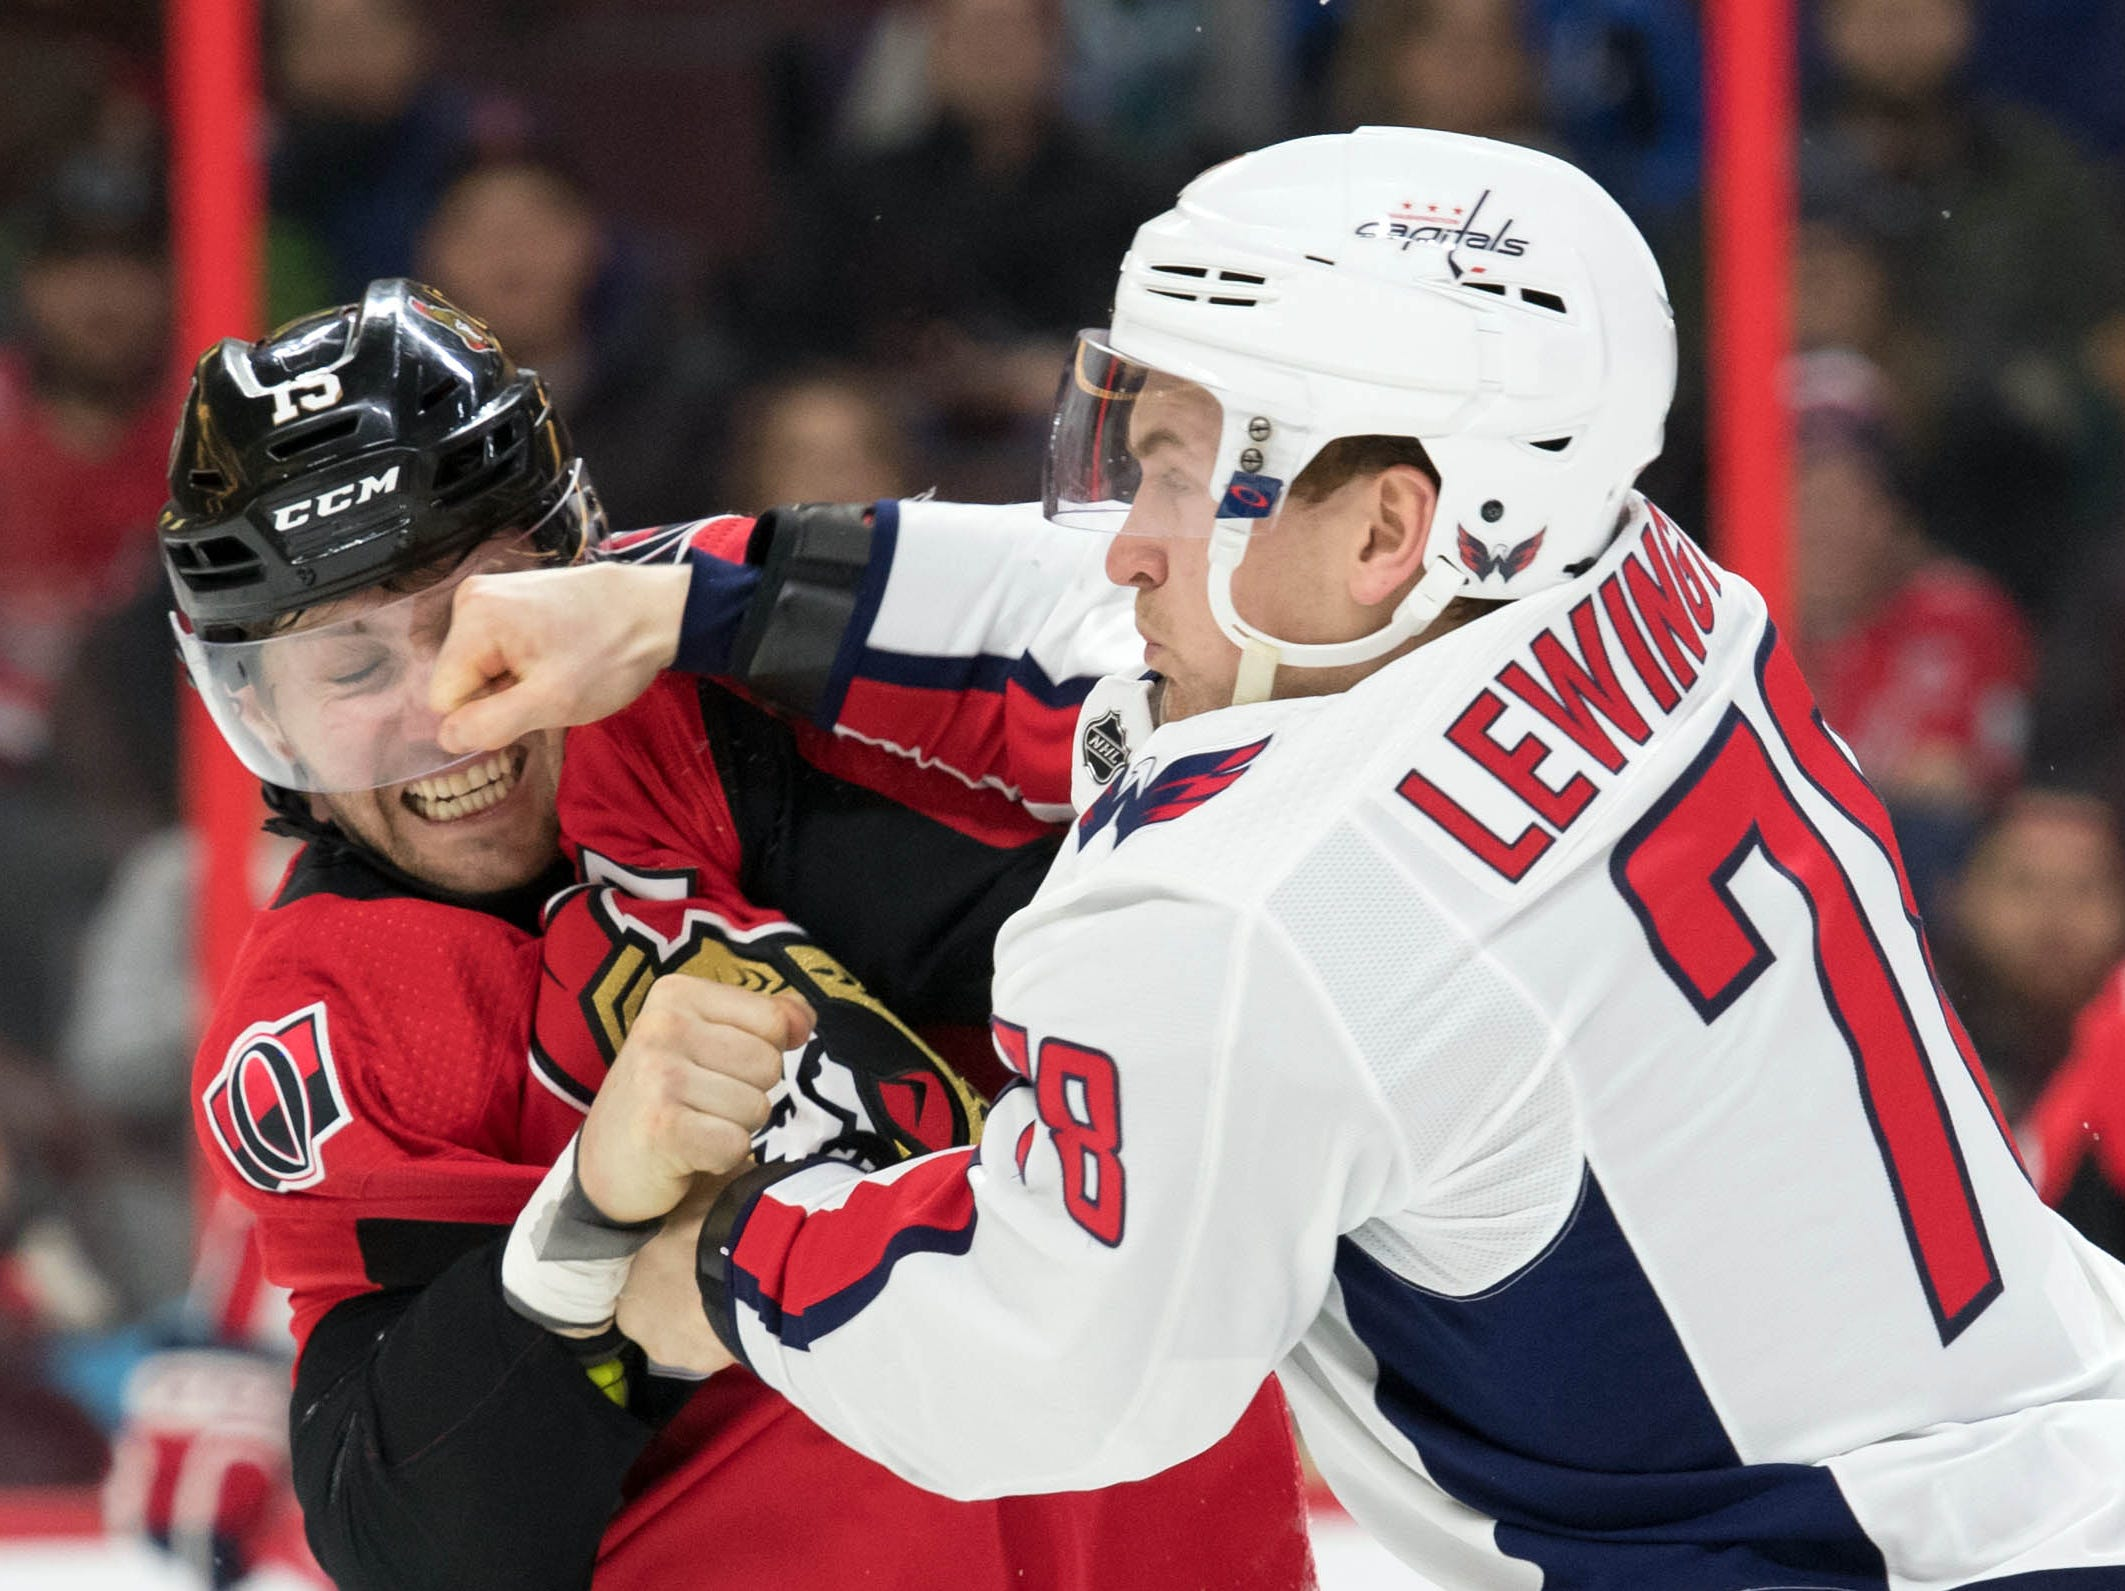 Dec. 29: Ottawa Senators' Zack Smith vs. Washington Capitals' Tyler Lewington.